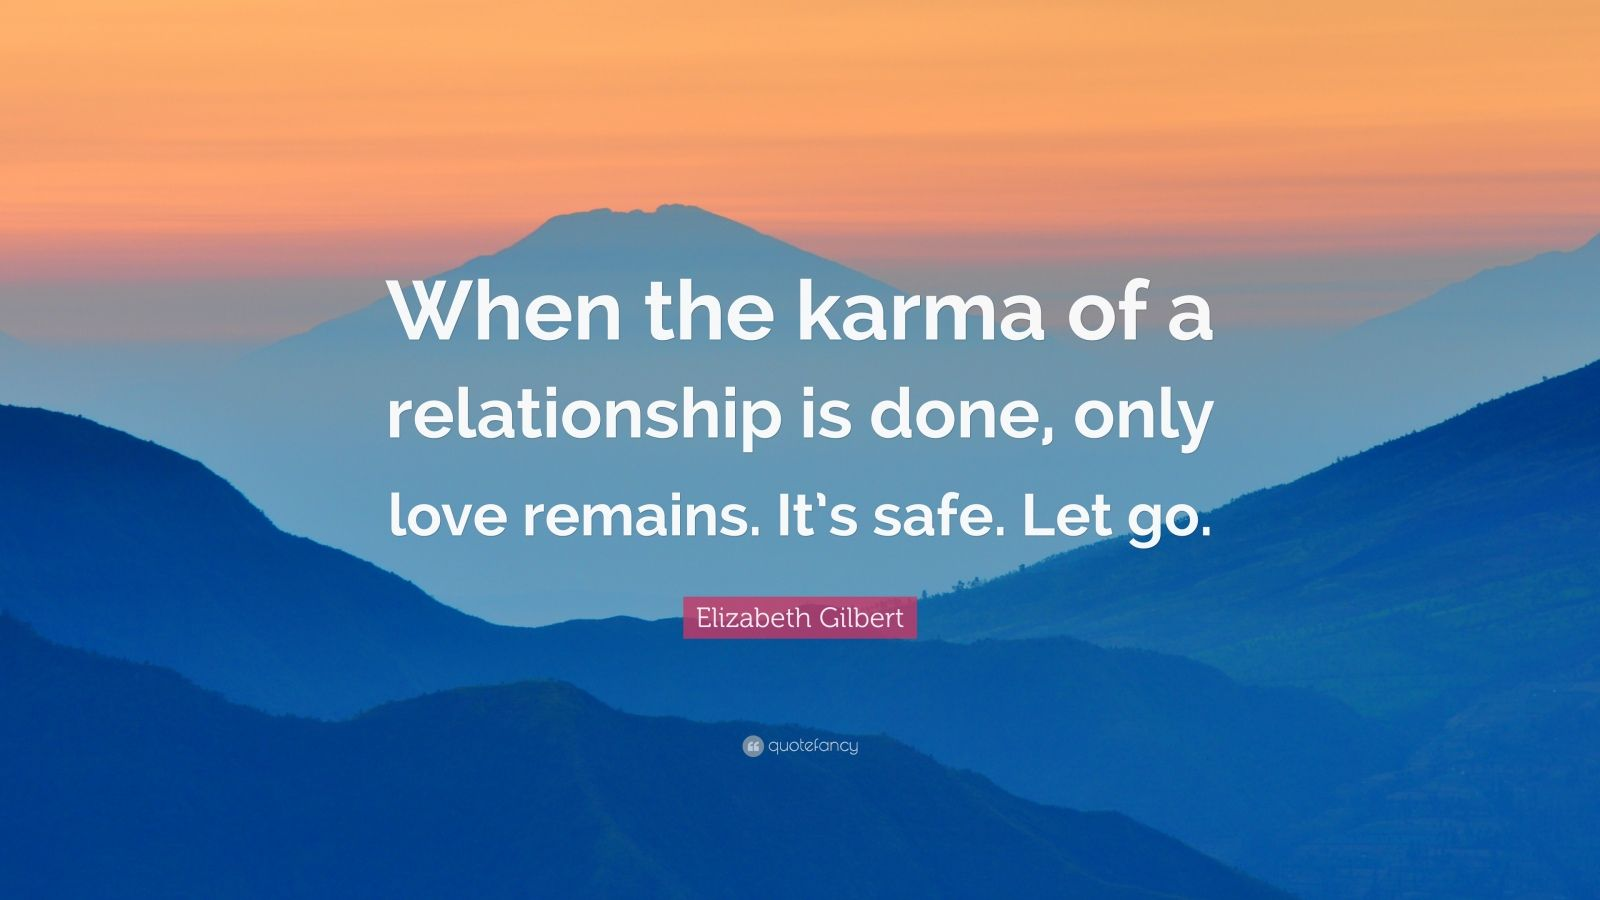 """Elizabeth Gilbert Quote: """"When the karma of a relationship is done, only love remains. It's safe. Let go."""""""